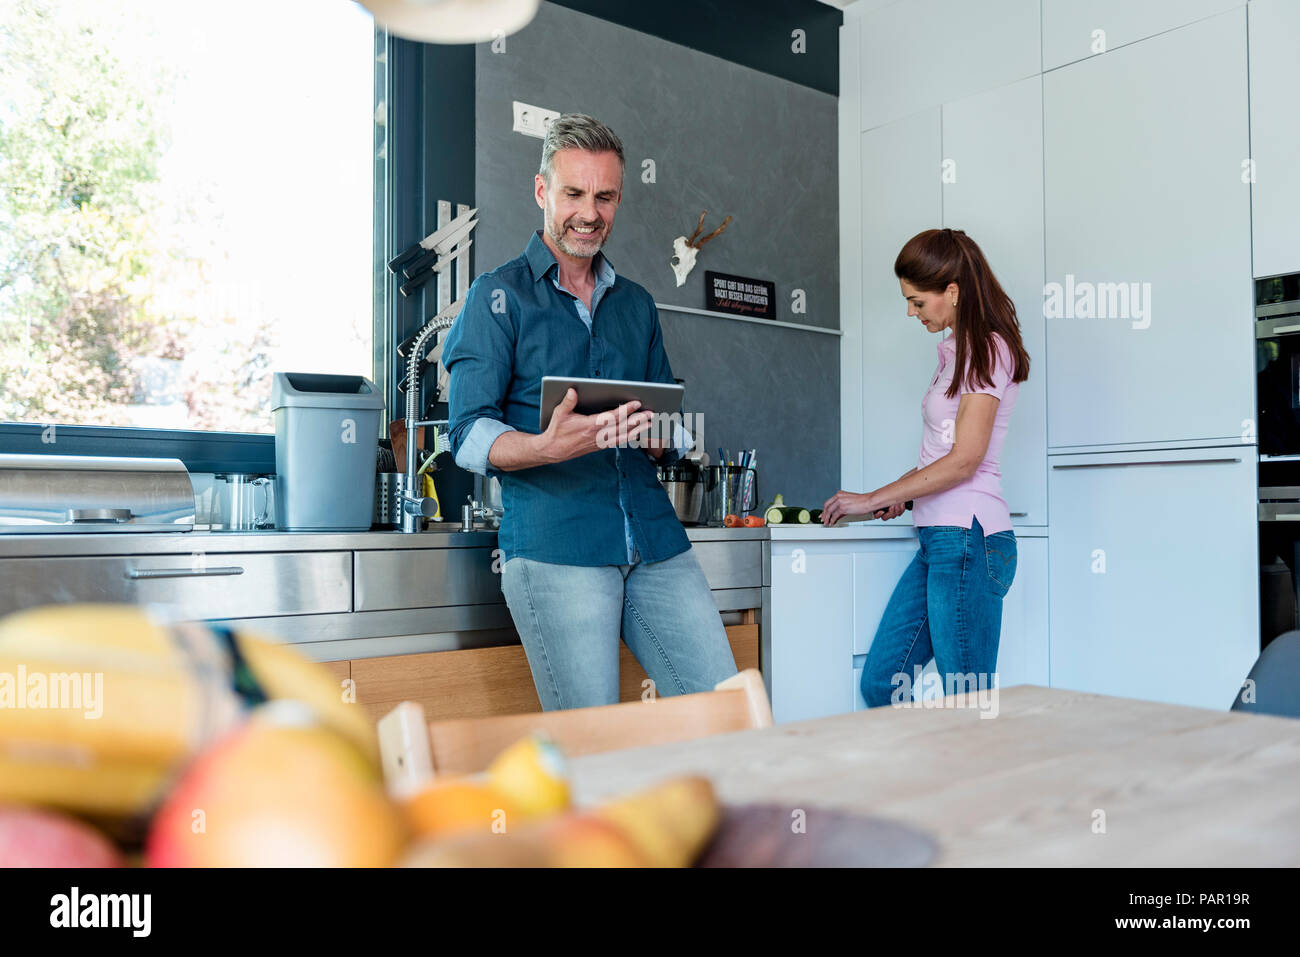 Couple in kitchen at home cooking and using a tablet - Stock Image